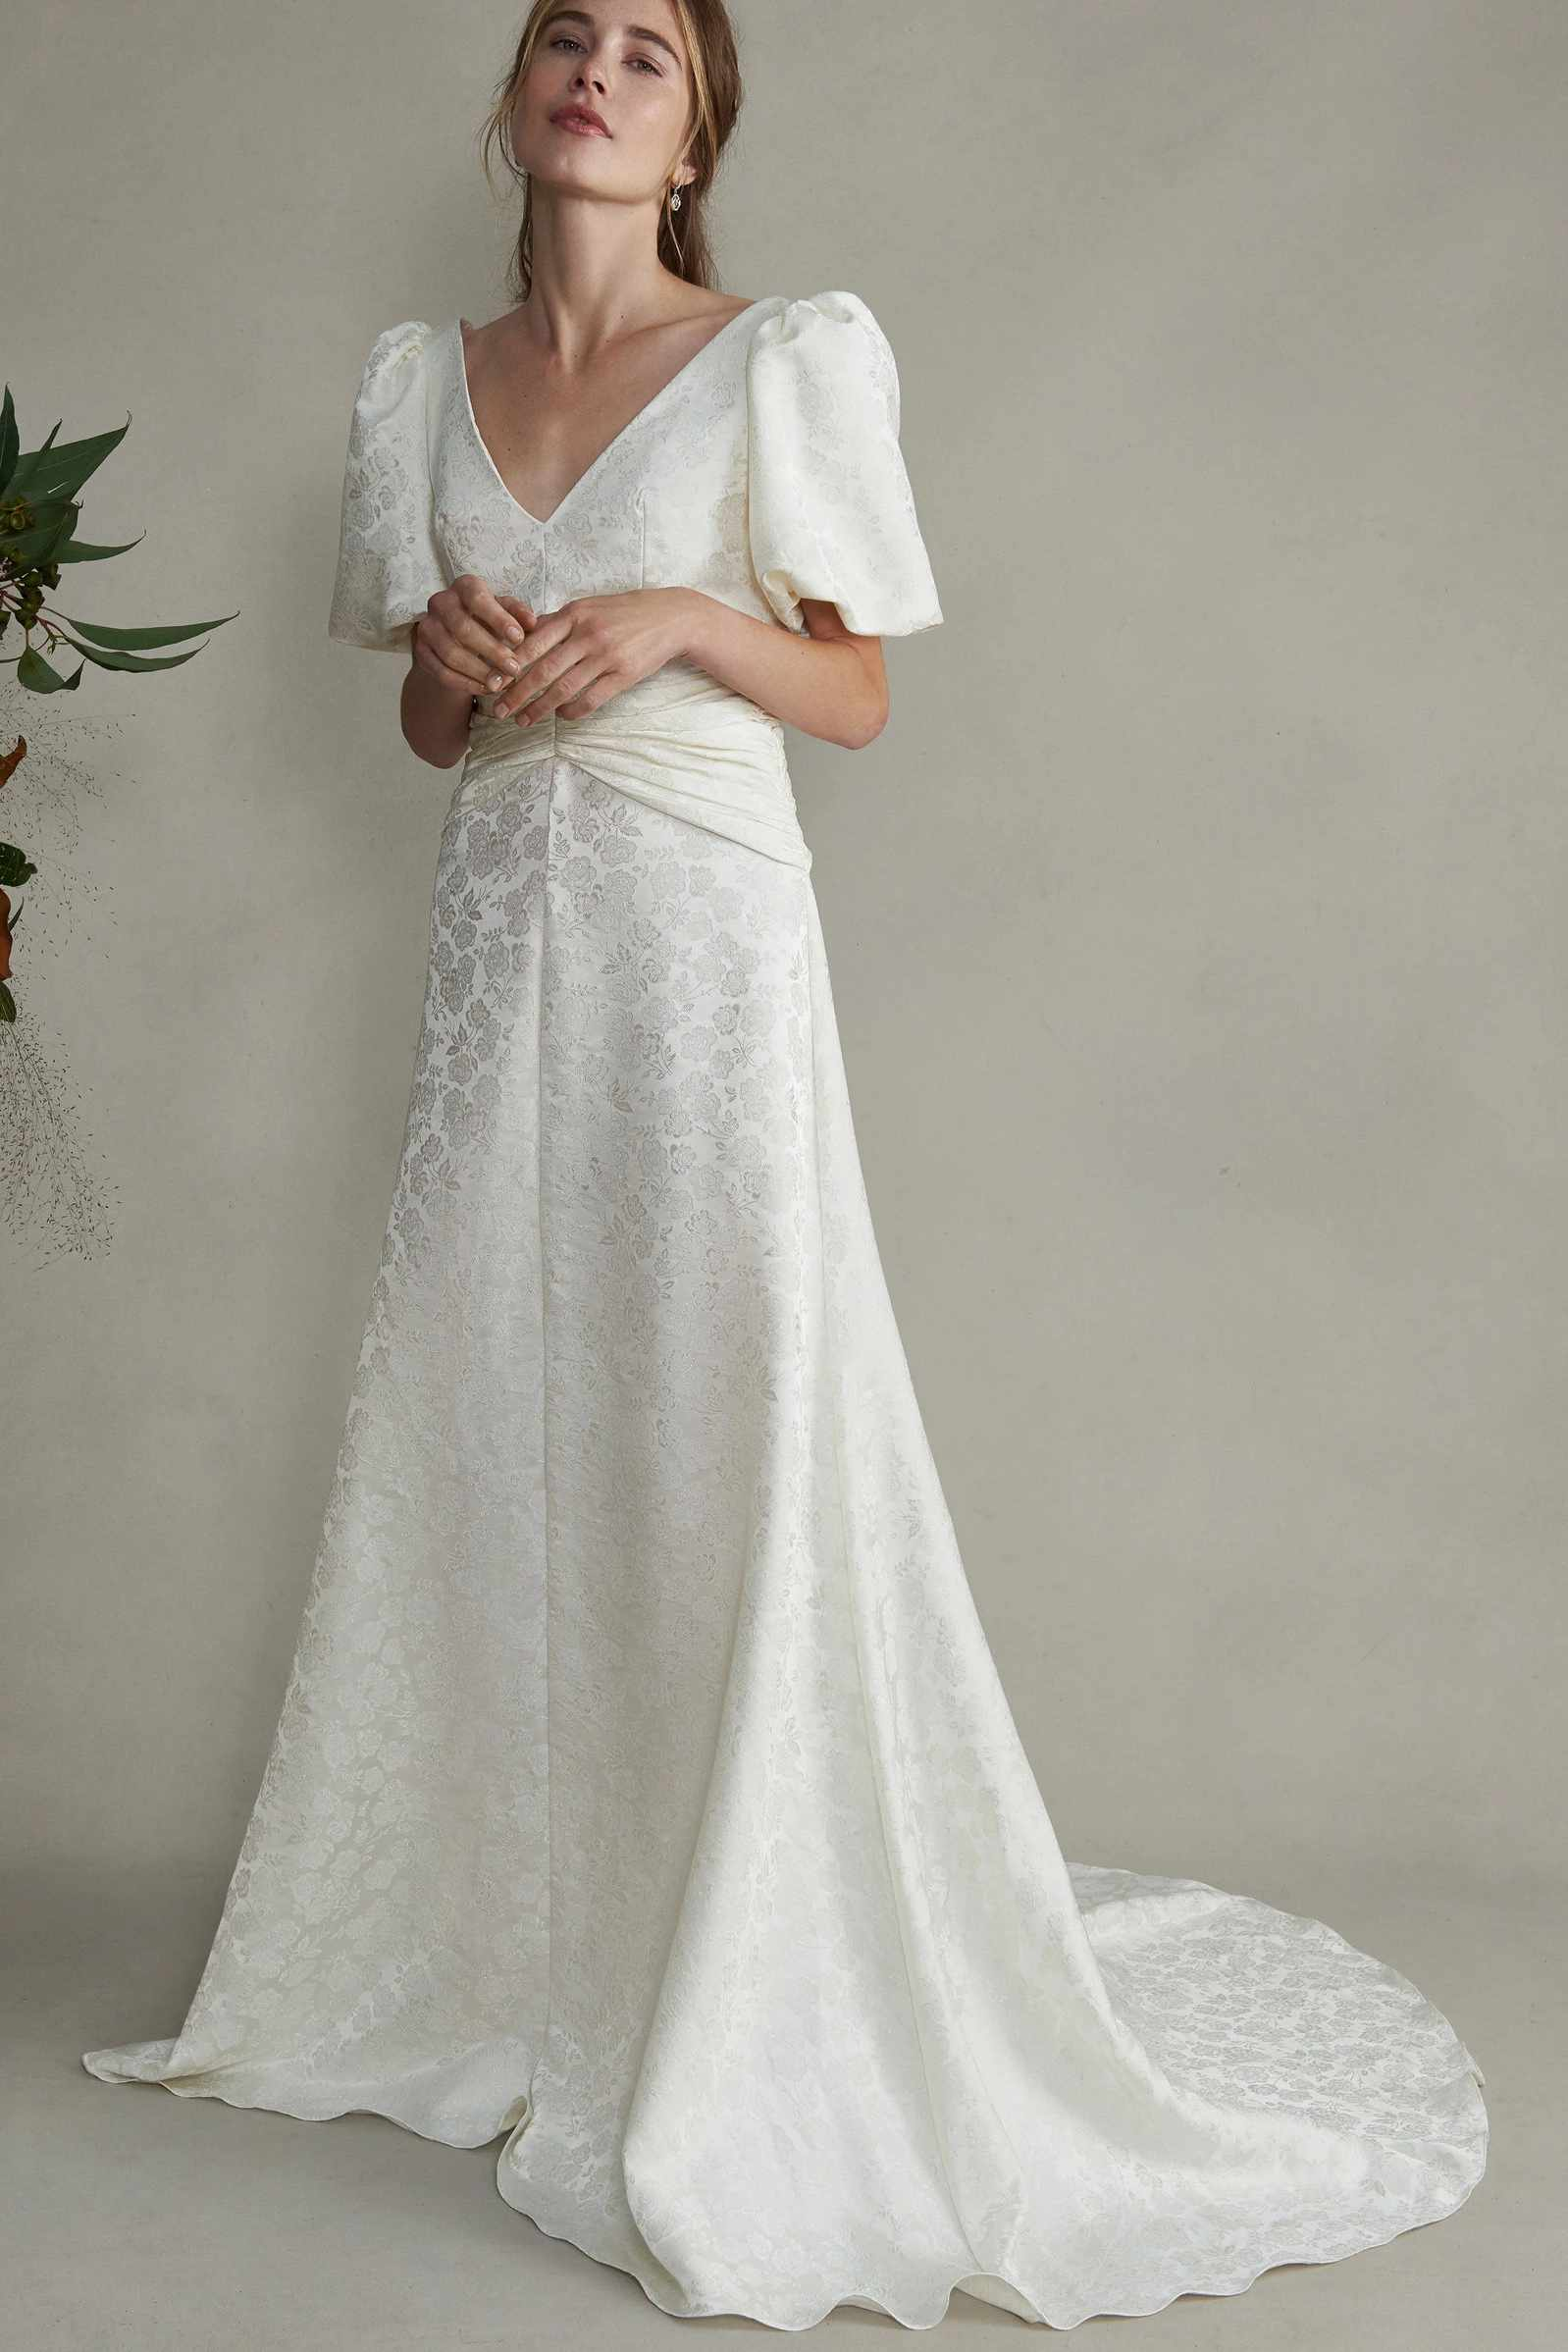 puff sleeves gown